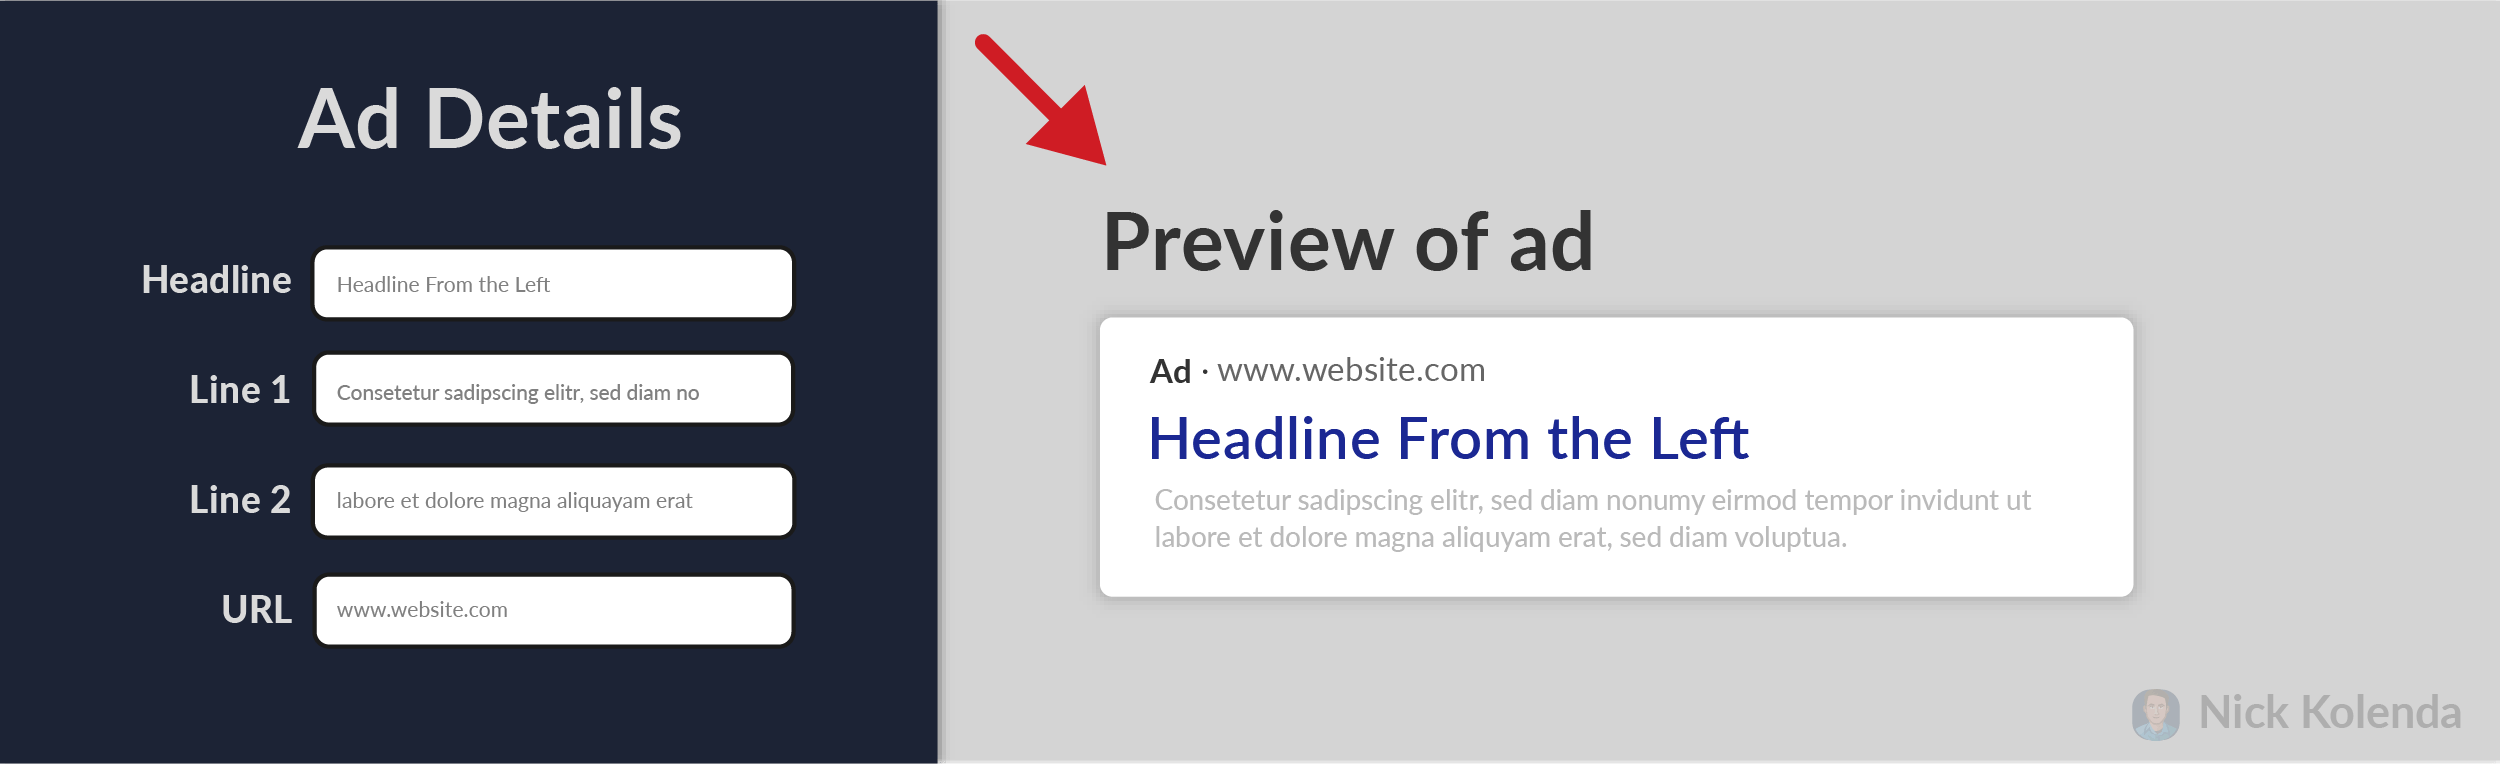 Enter ad details on left with preview of output on right